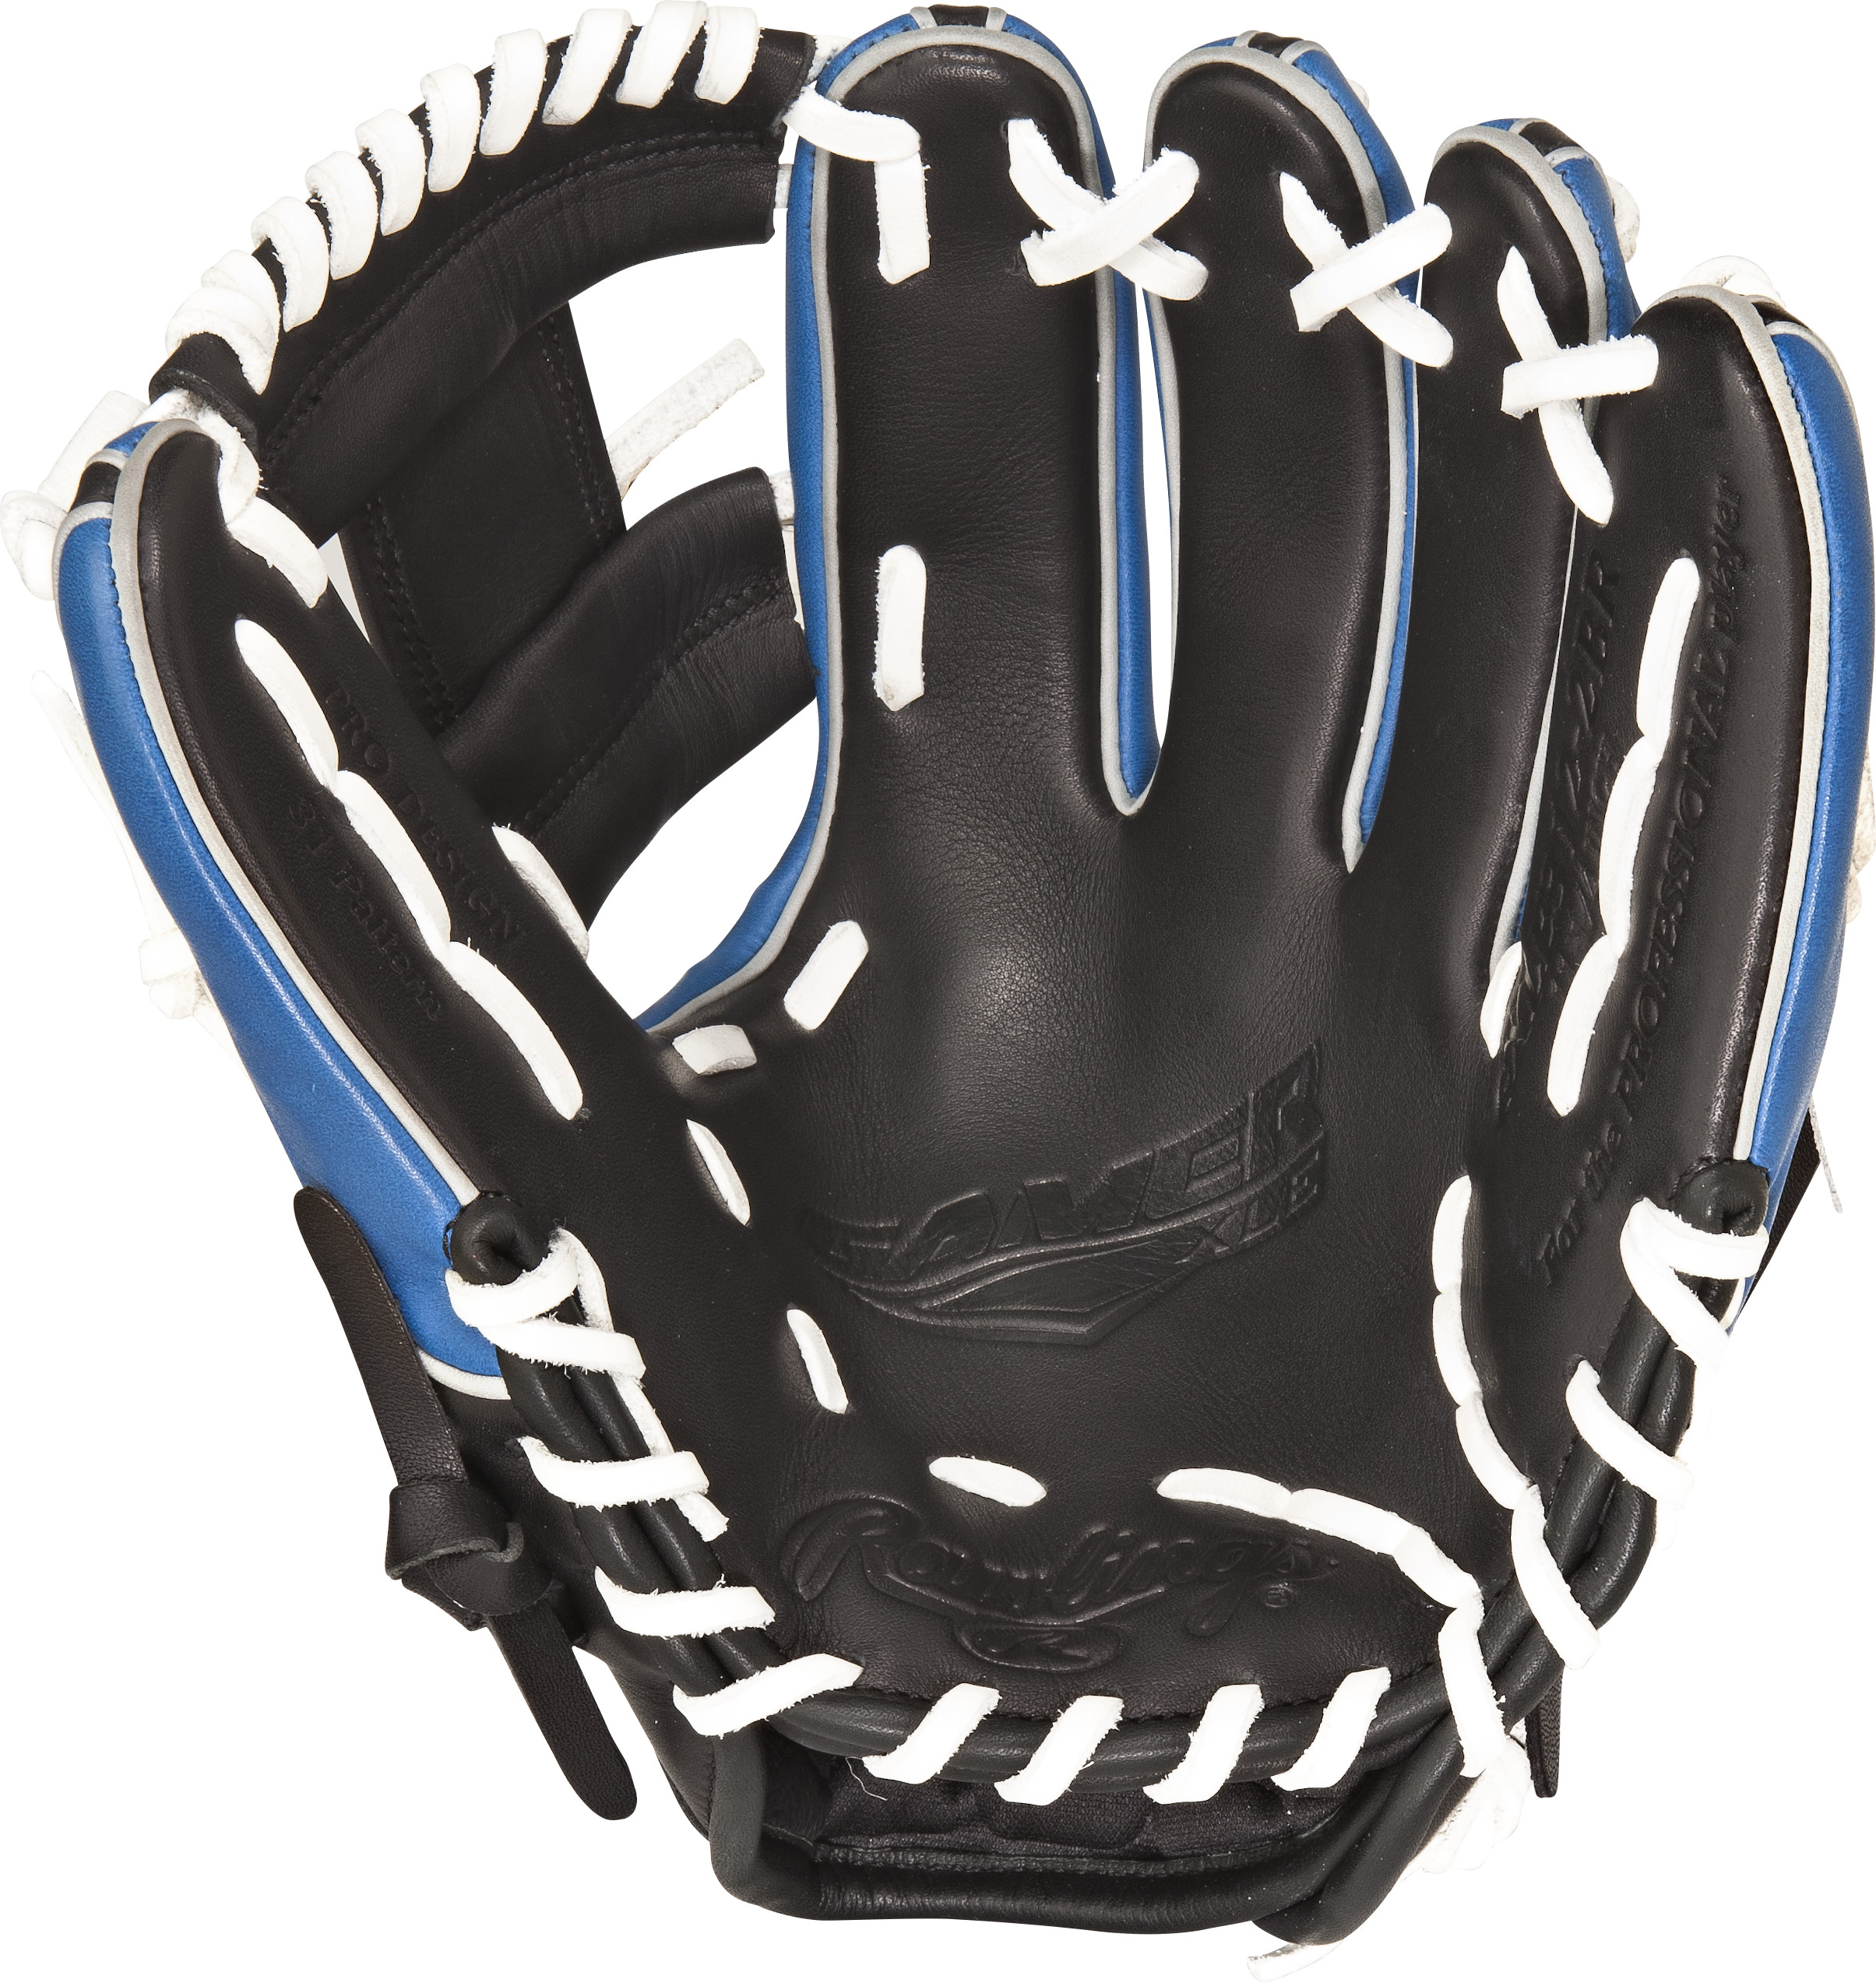 http://www.bestbatdeals.com/images/gloves/rawlings/GXLE312-2BR_palm.jpg